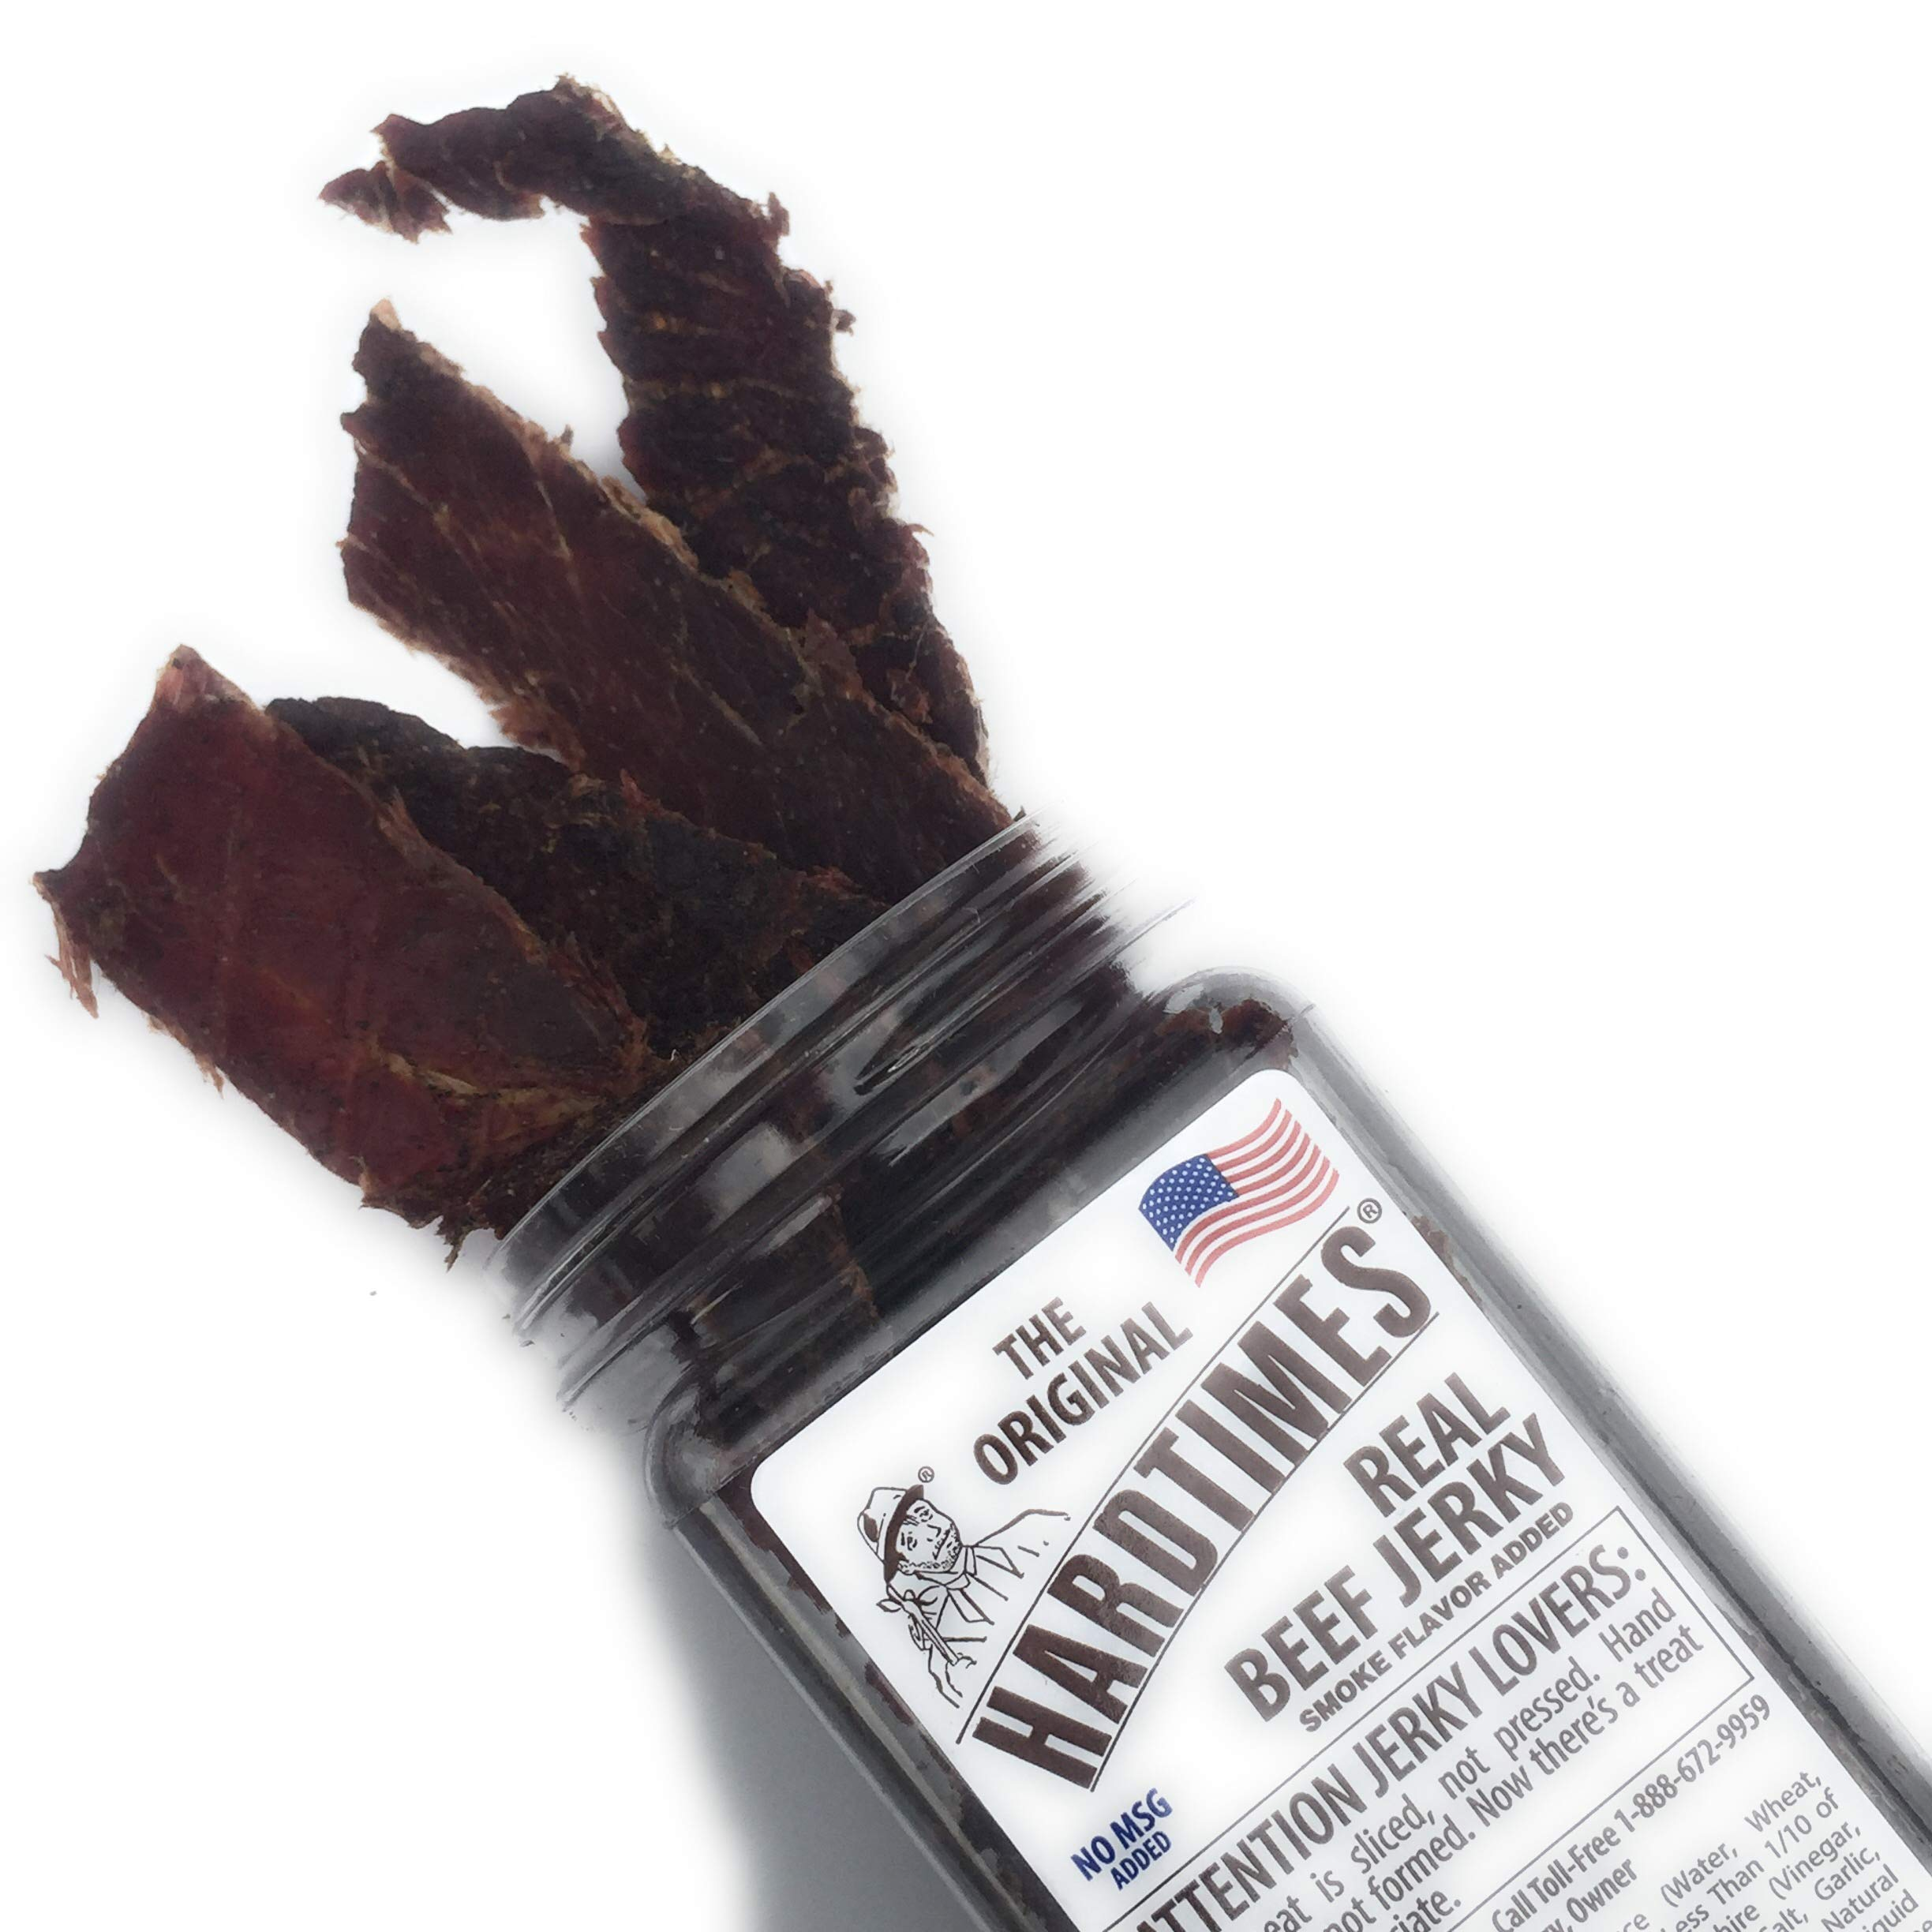 HARD TIMES 8oz Jar Original Real Beef Jerky Sliced Hand Trimmed Dry Tough Jerky For HardTimes by hard times (Image #2)